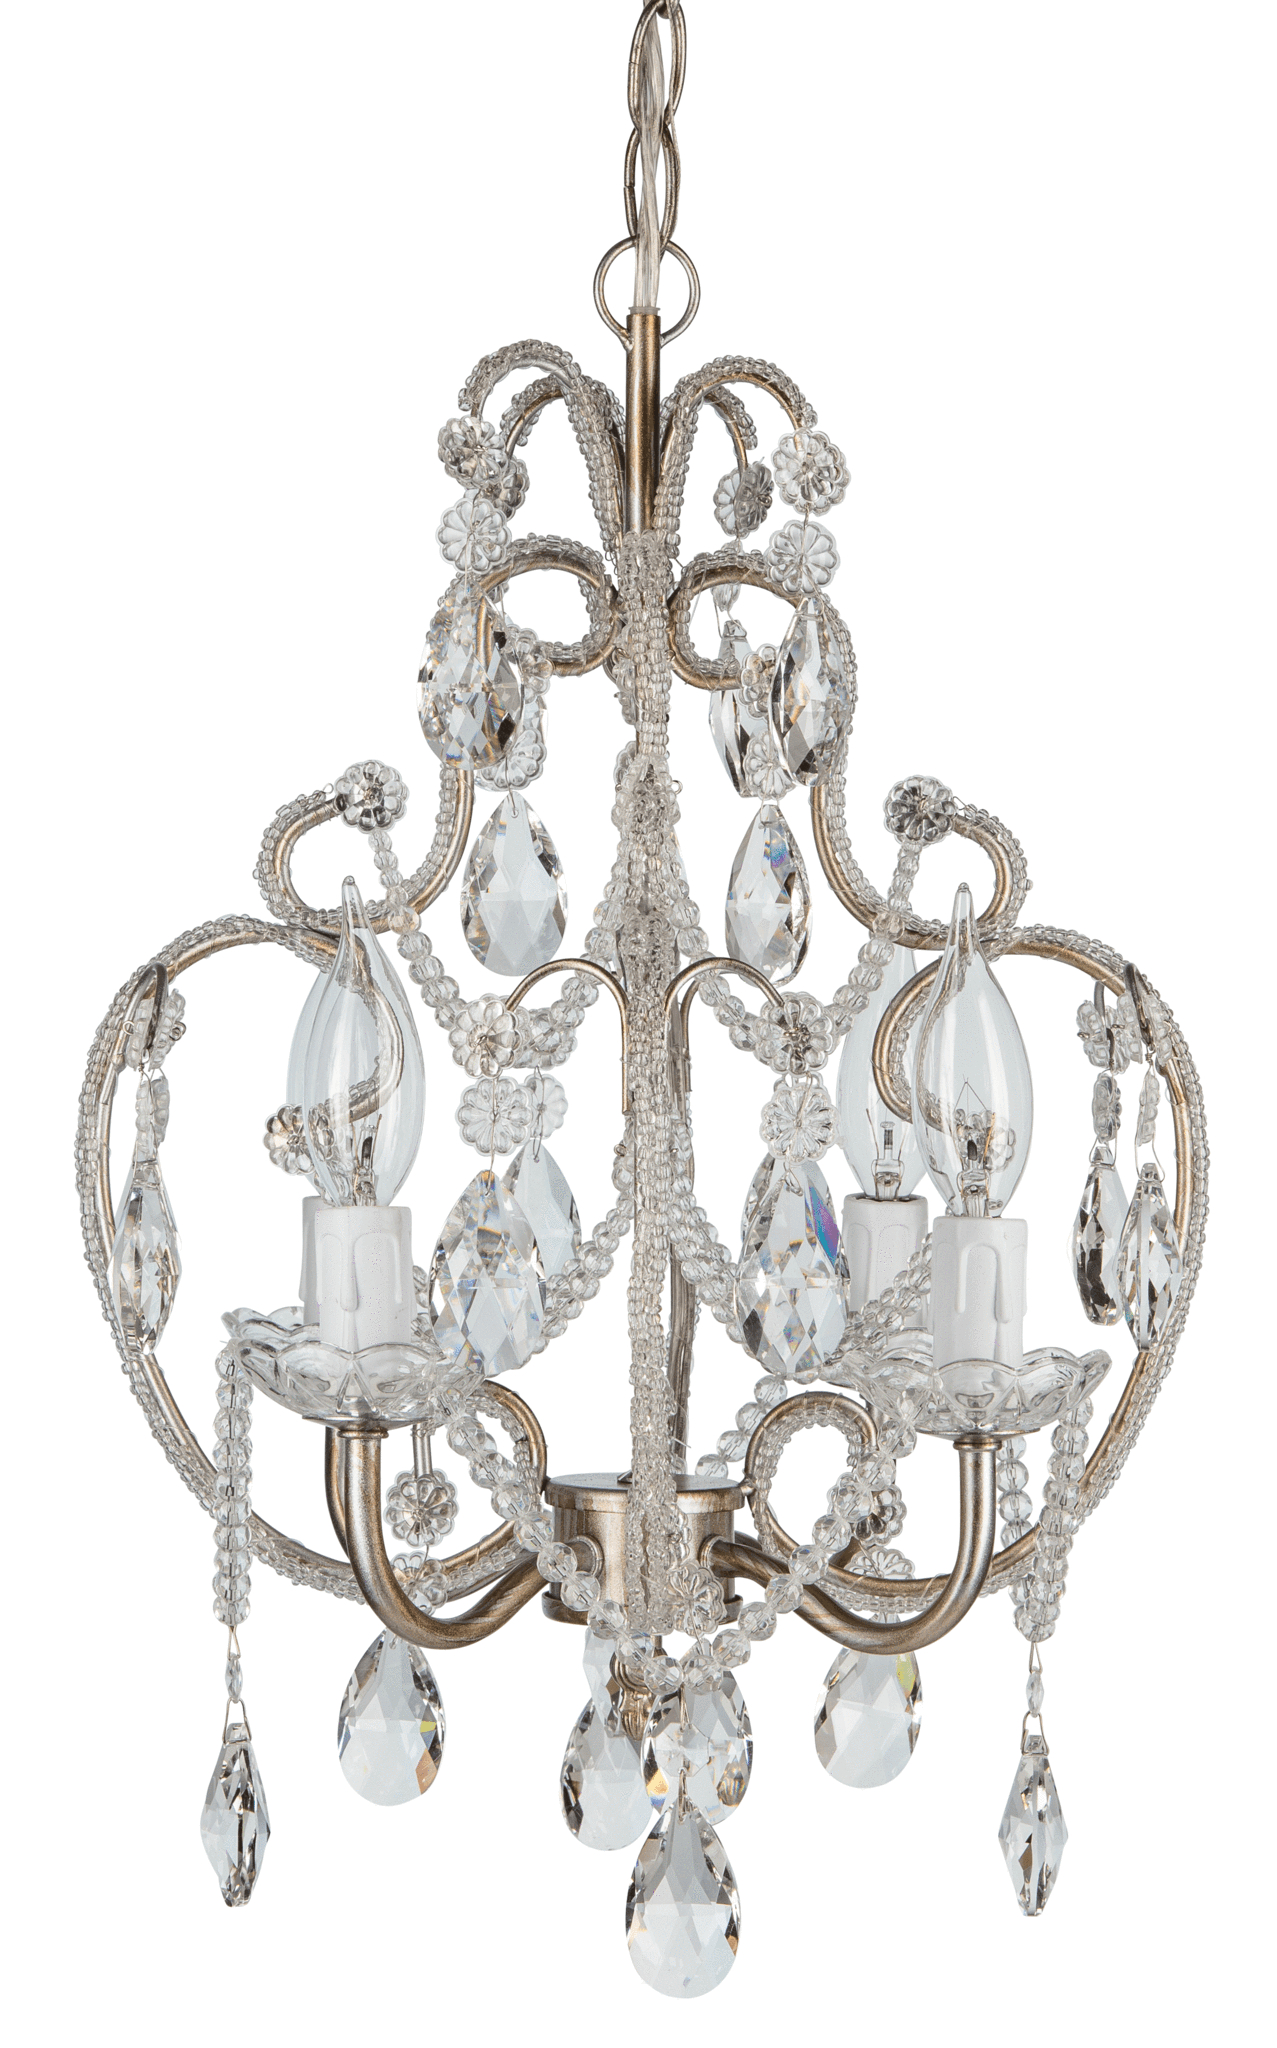 Recent Aldora 4-Light Candle Style Chandeliers inside 4 Light Beaded Crystal Plug-In Chandelier (Silver)